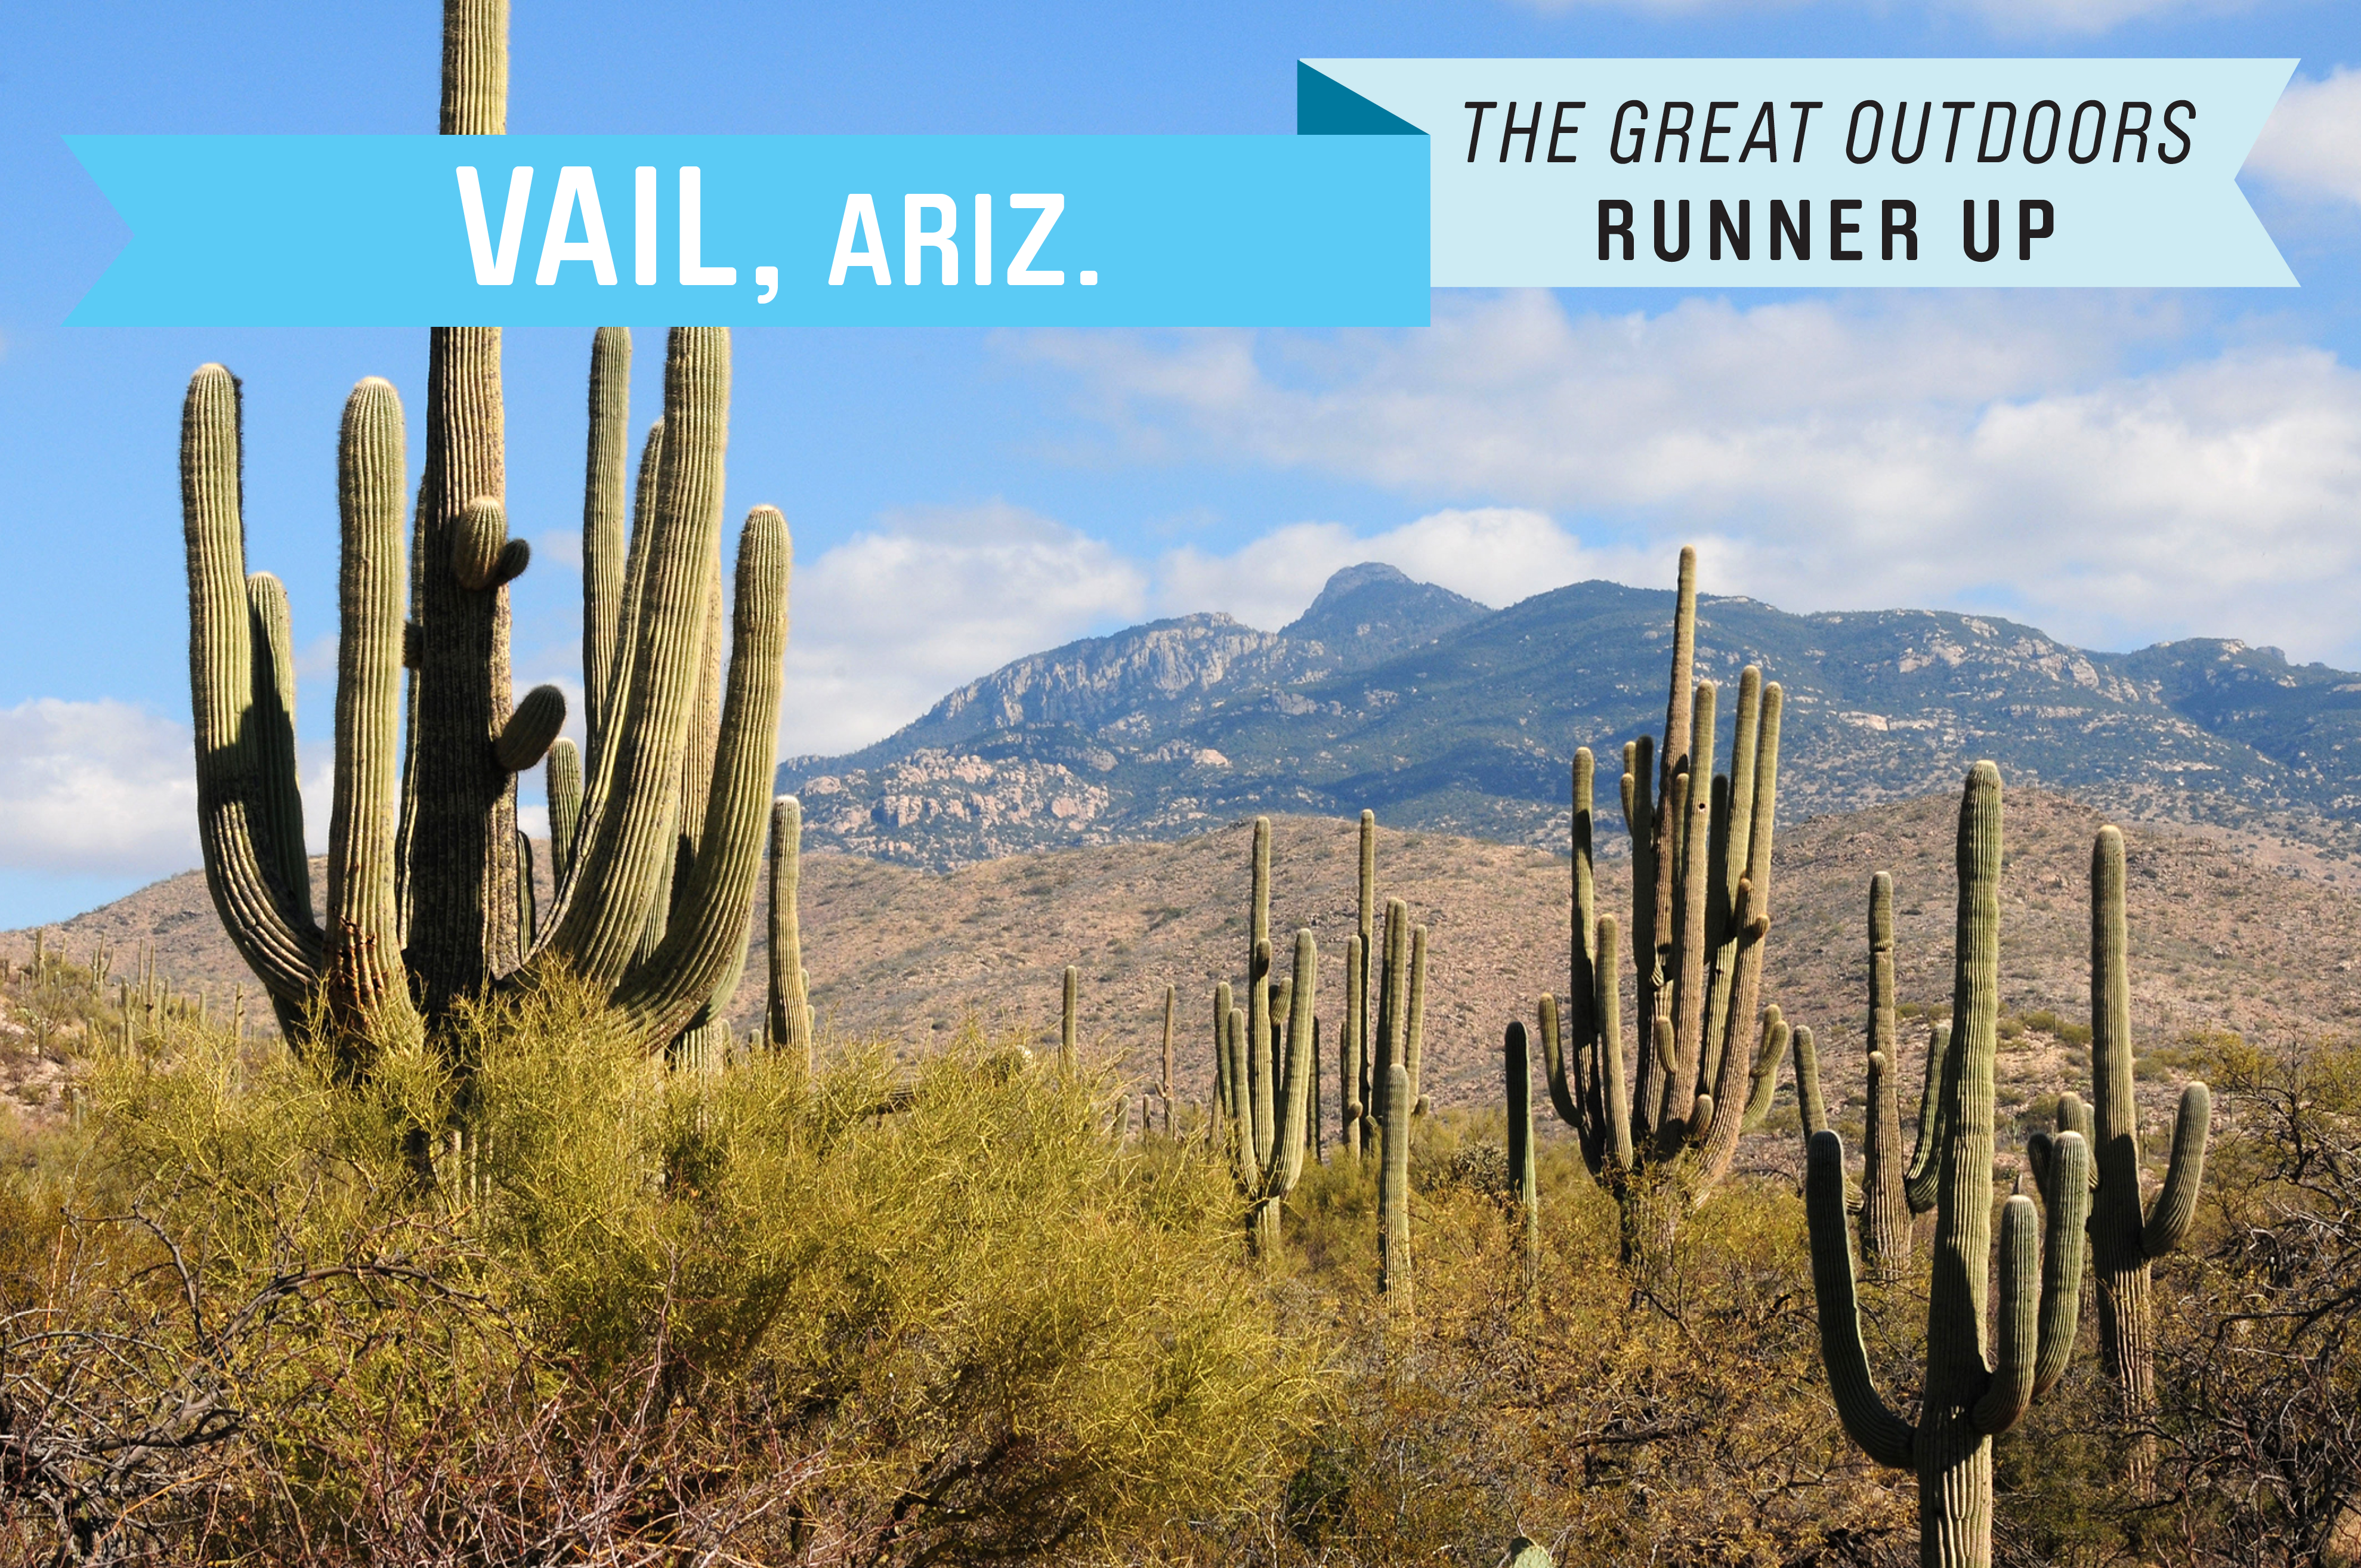 A growing community 22 miles southeast of Tucson, Vail is cooler than many desert towns, thanks to the natural air conditioning provided by the Rincon Mountains. It's also more affordable than many similar retirement destinations, with a  median home price of just under $200,000.